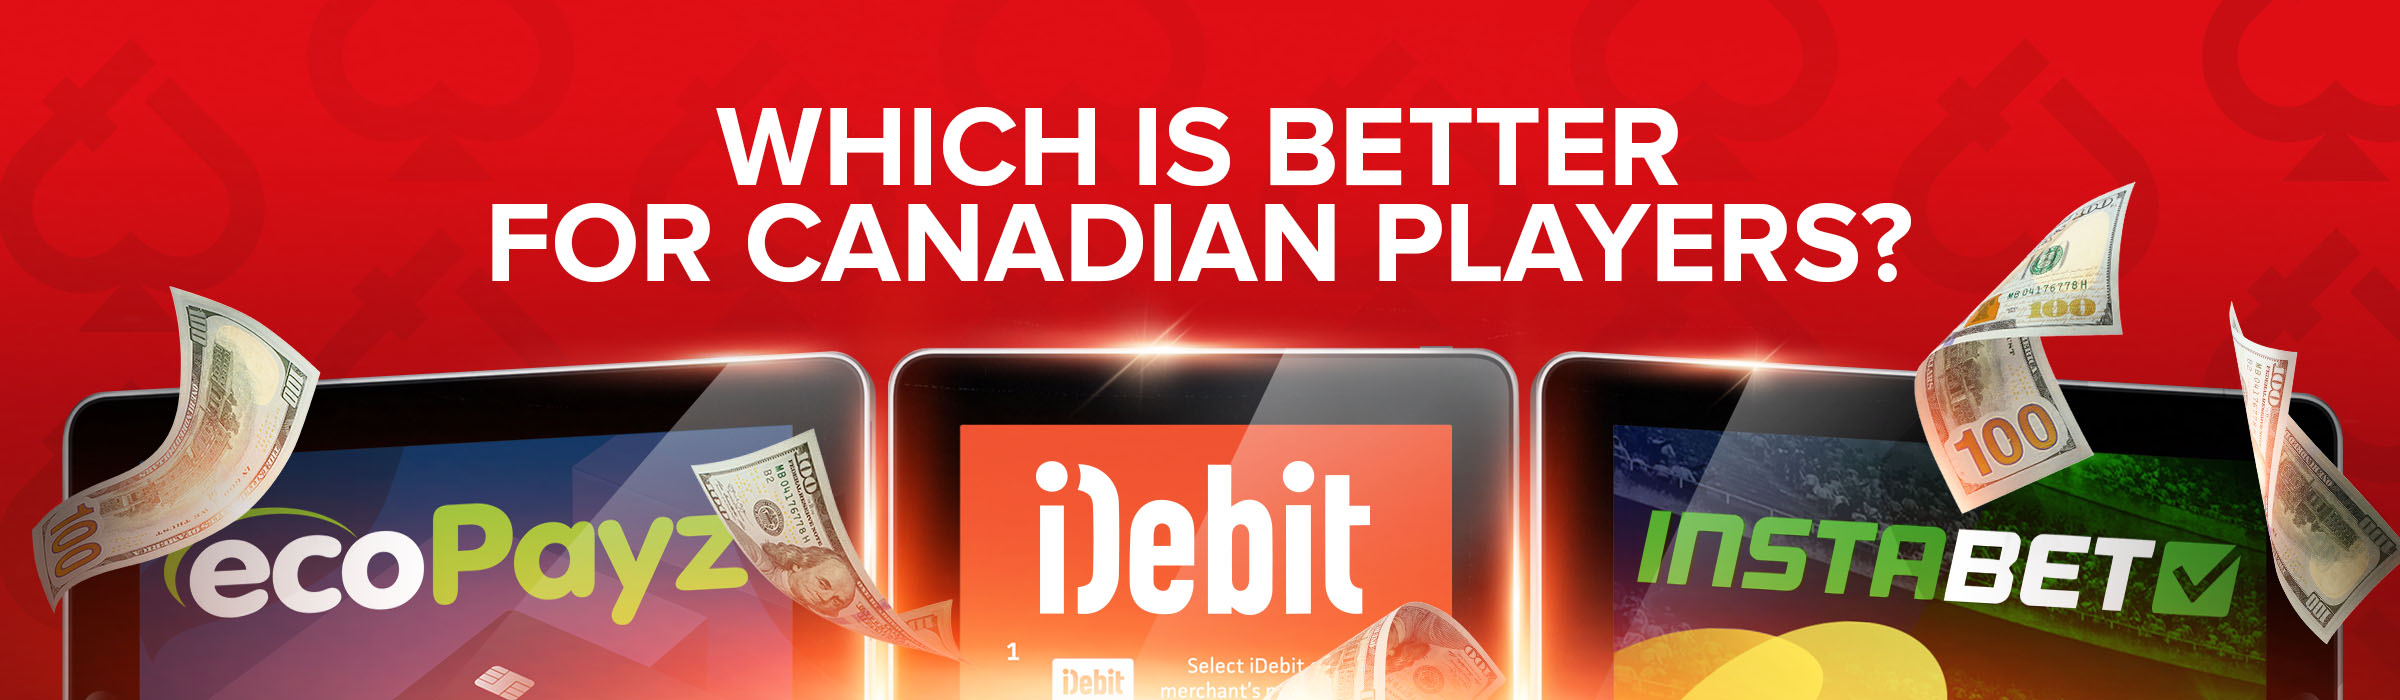 Instadebit Vs. iDebit Vs. EcoPayz – Which is the Better Payment Method for Canadian Players?